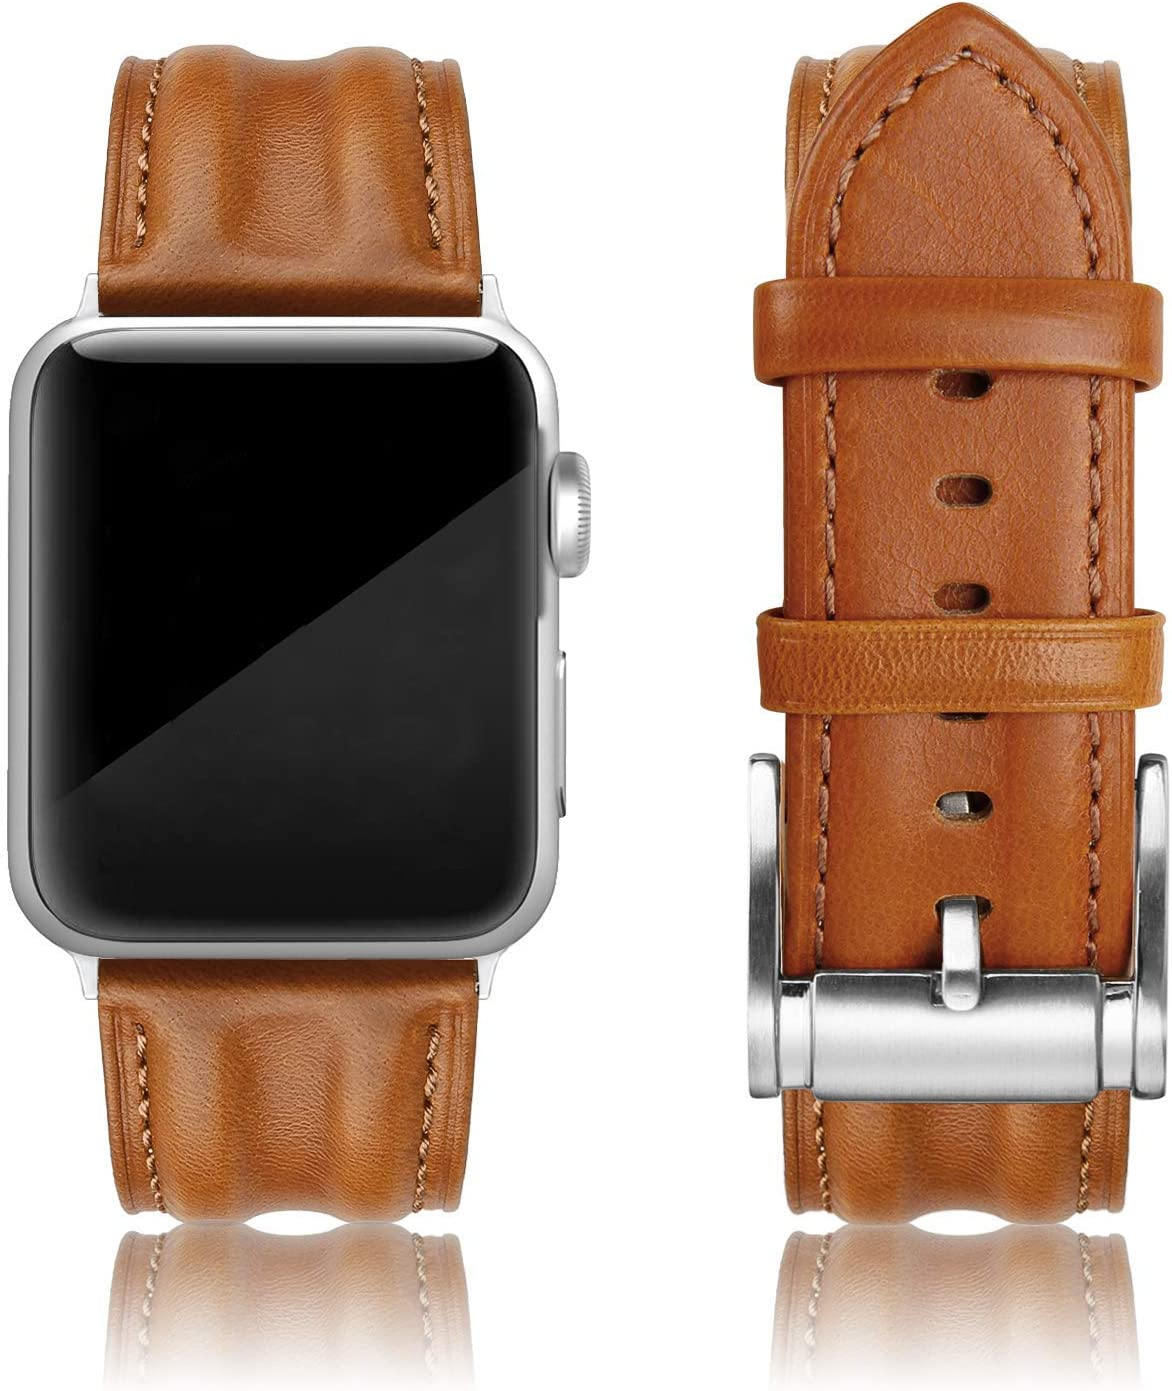 SWEES Leather Band Compatible with iWatch 42mm 44mm, Genuine Leather Classic Strap Wristband Compatible for Watch Series 6, Series 5, Series 4, Series 3, Series 2, Series 1, SE Sports & Edition Men, Saddle Brown